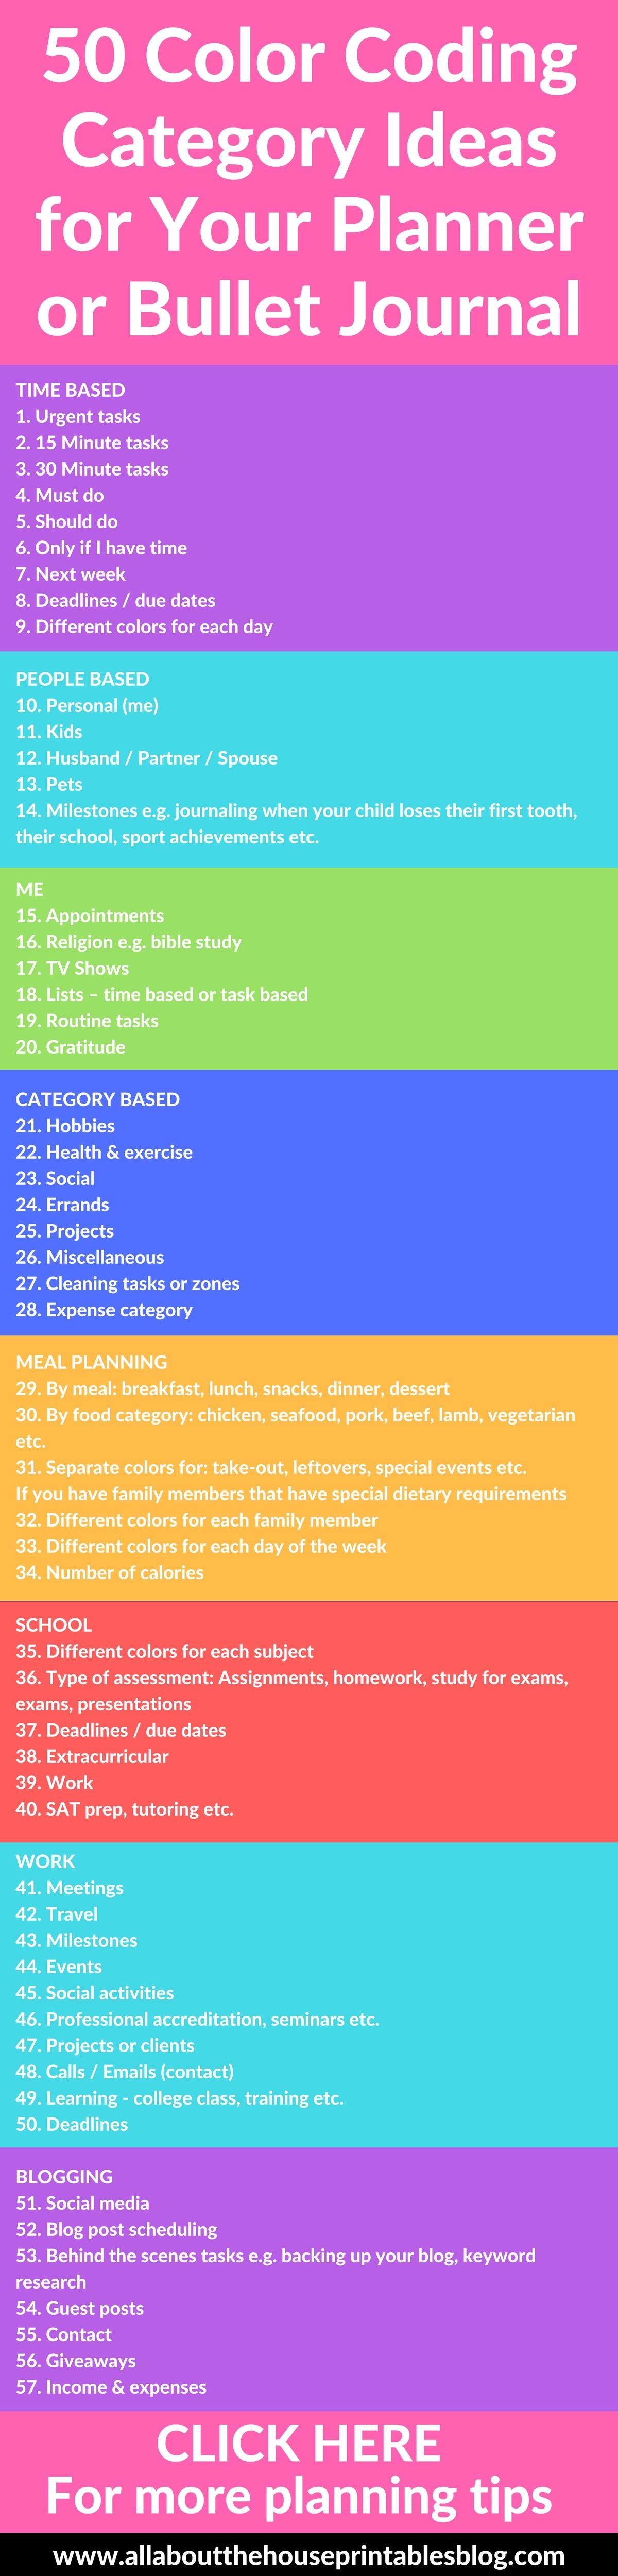 50 category ideas for color coding your planner bujo for Color coding planner